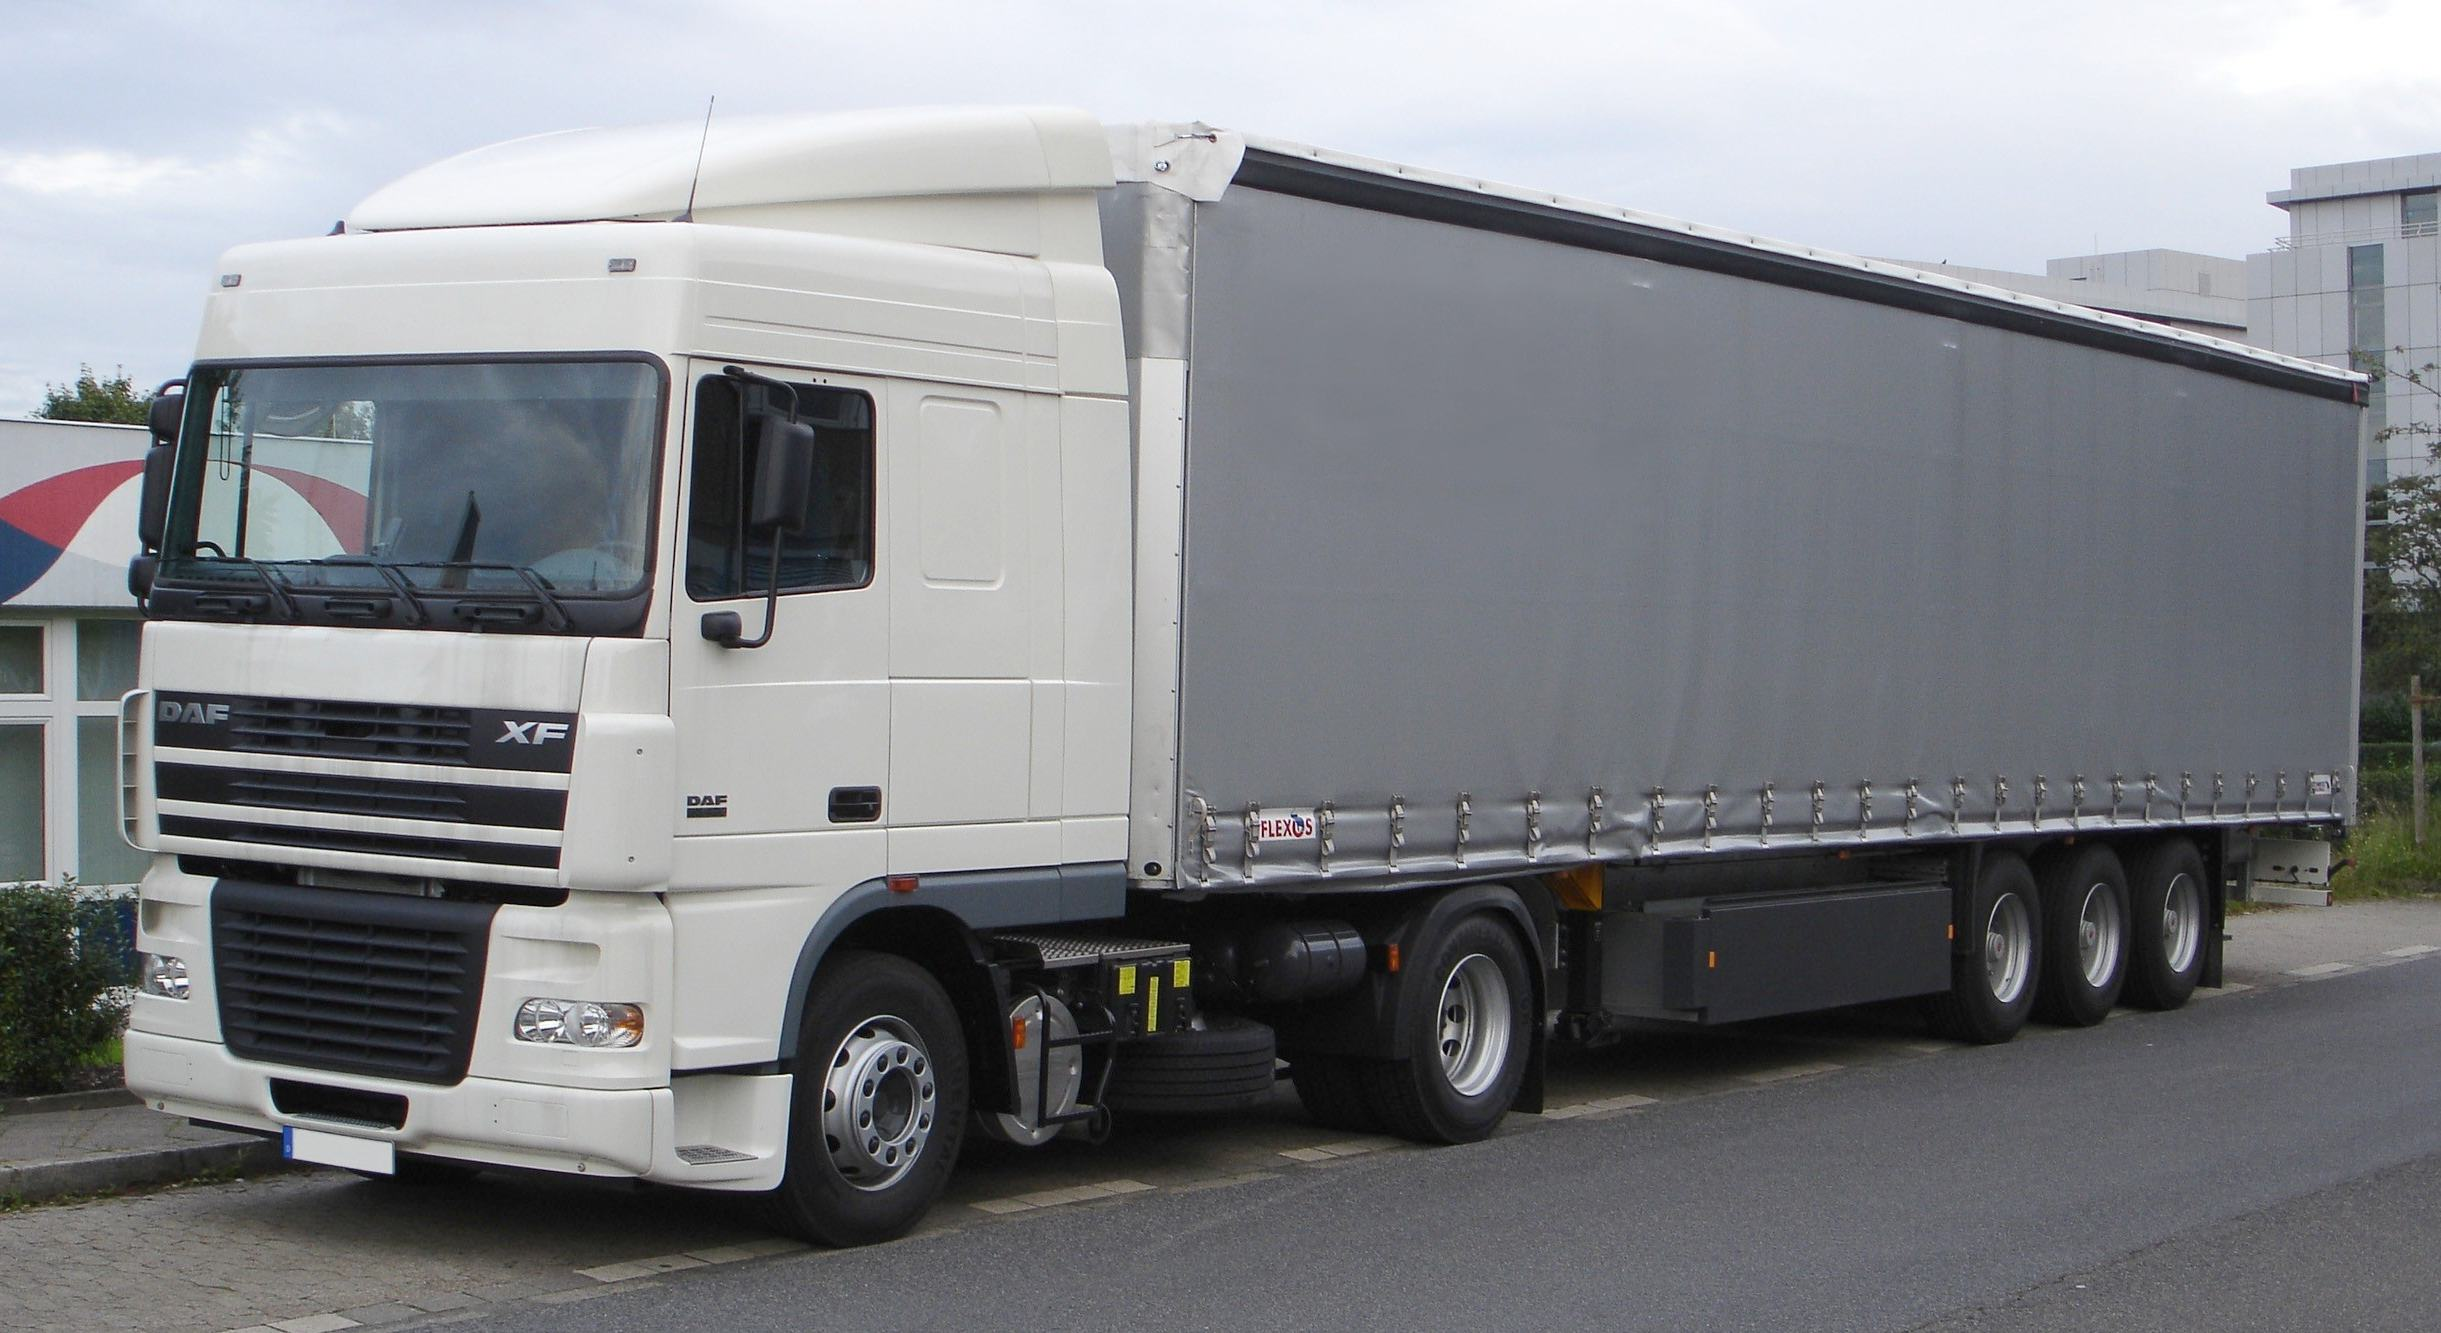 Daf 95xf photo - 2